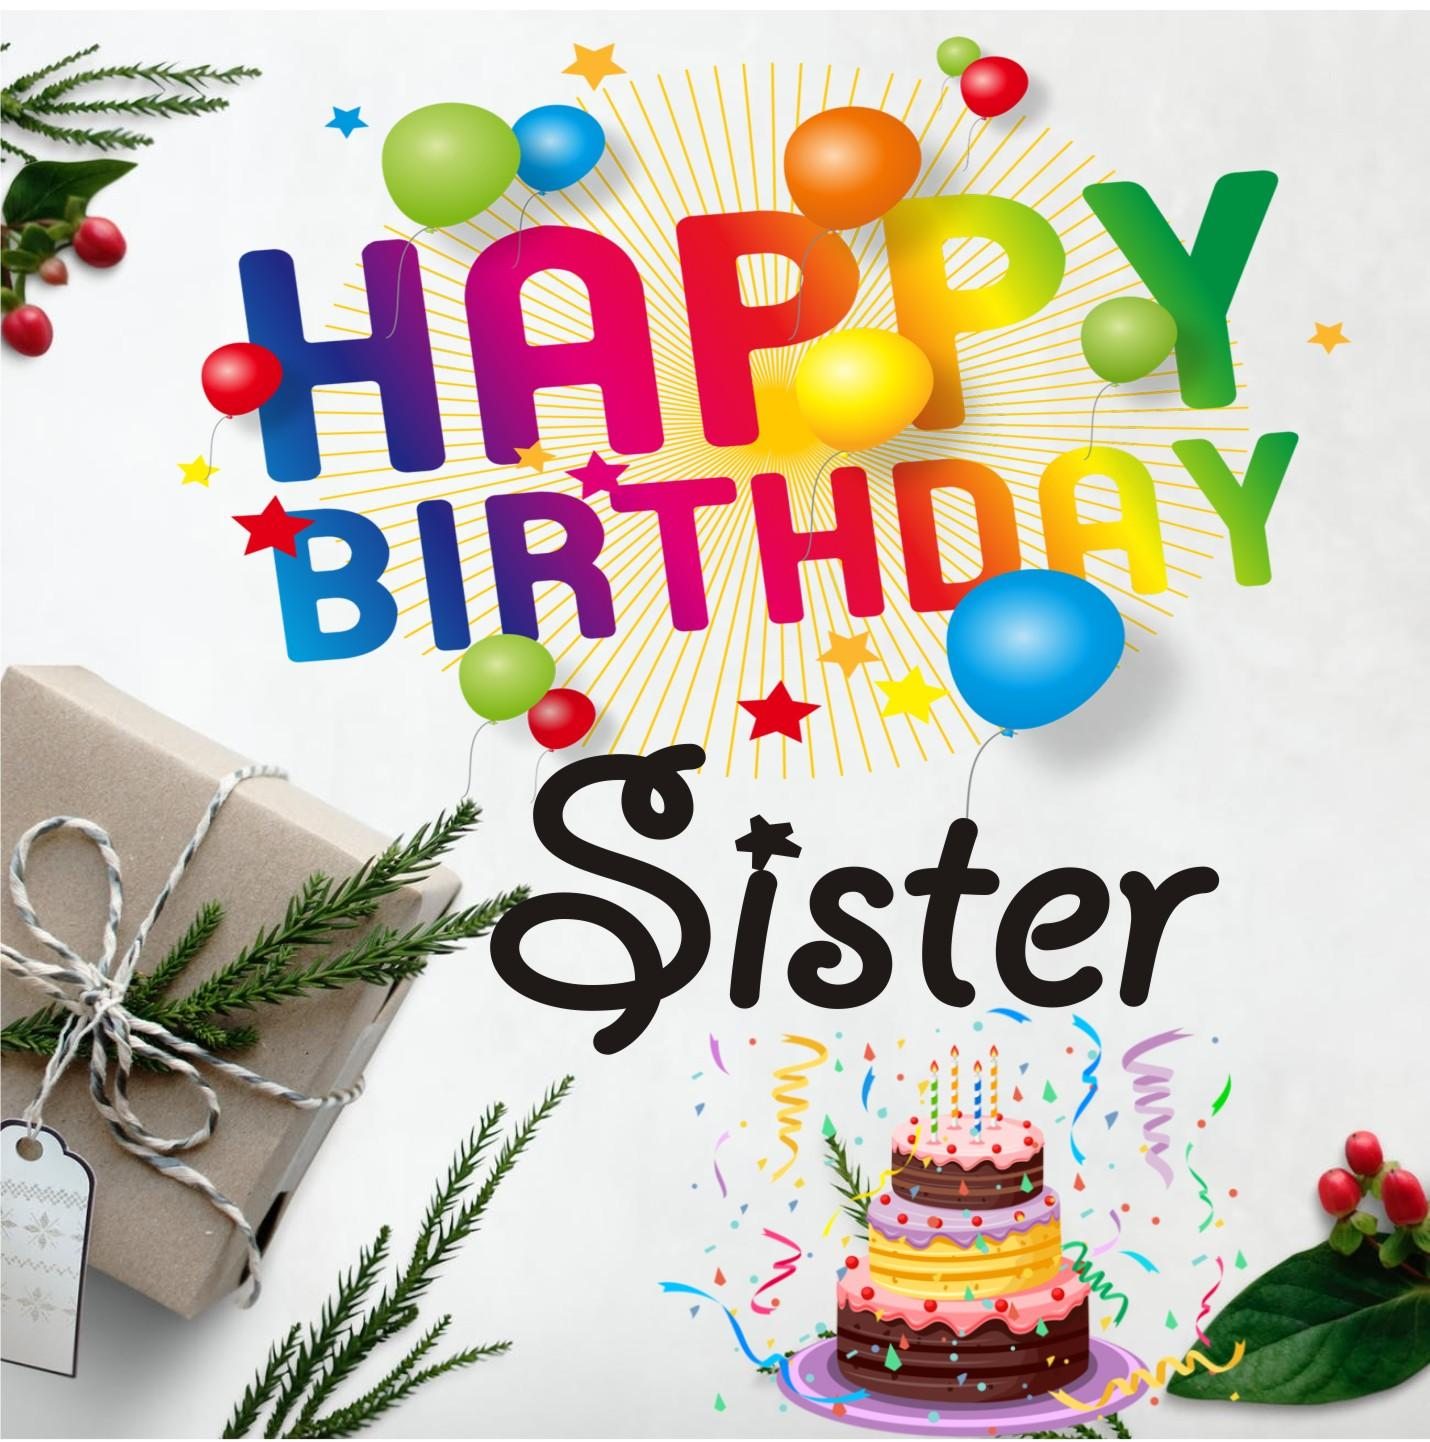 Happy Birthday Sister Wallpapers Wallpaper Cave